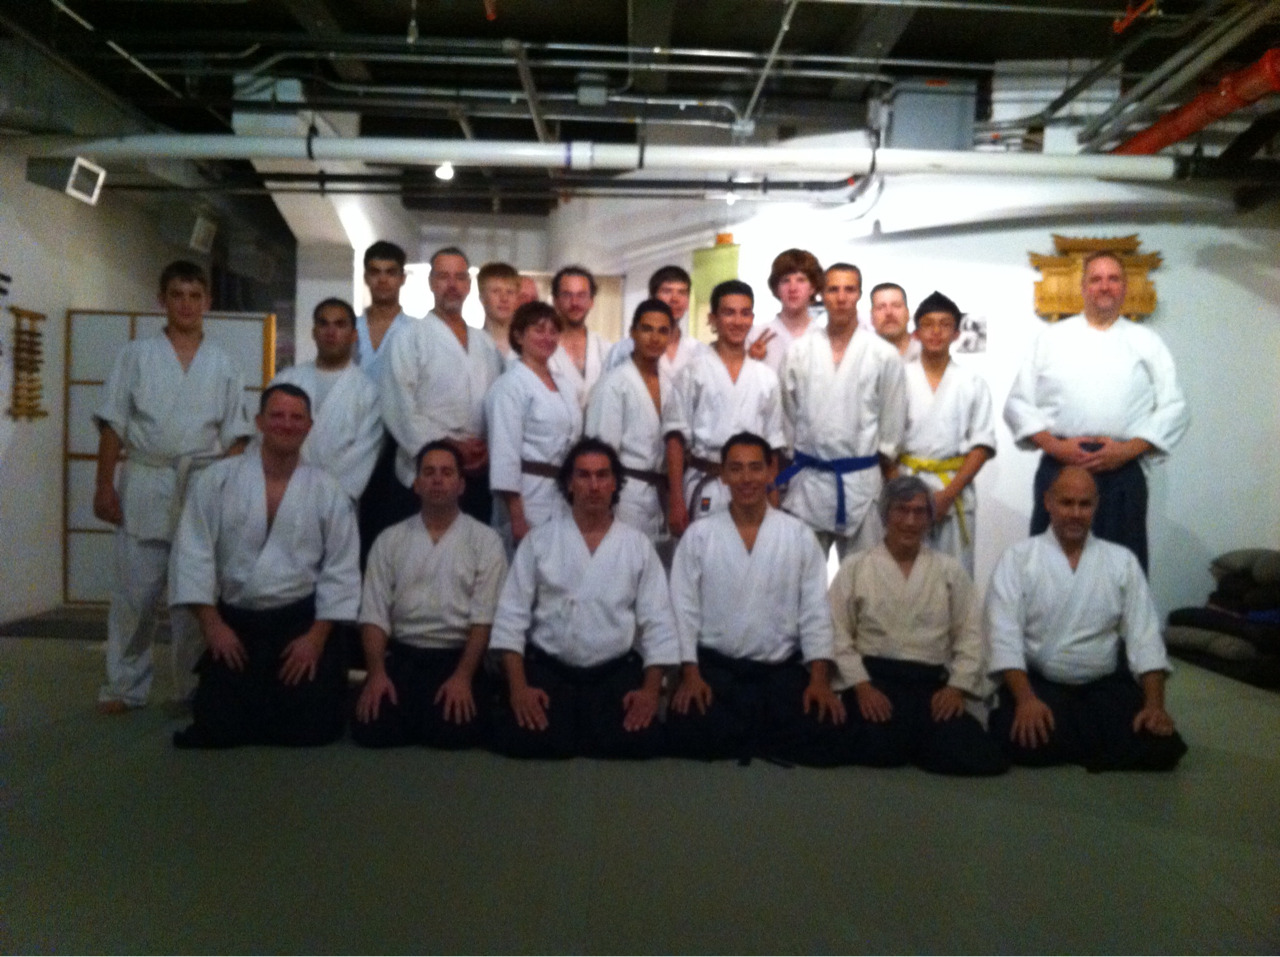 T. Toyoda Sensei at Shoshinkan Dojo in Providence, RI.